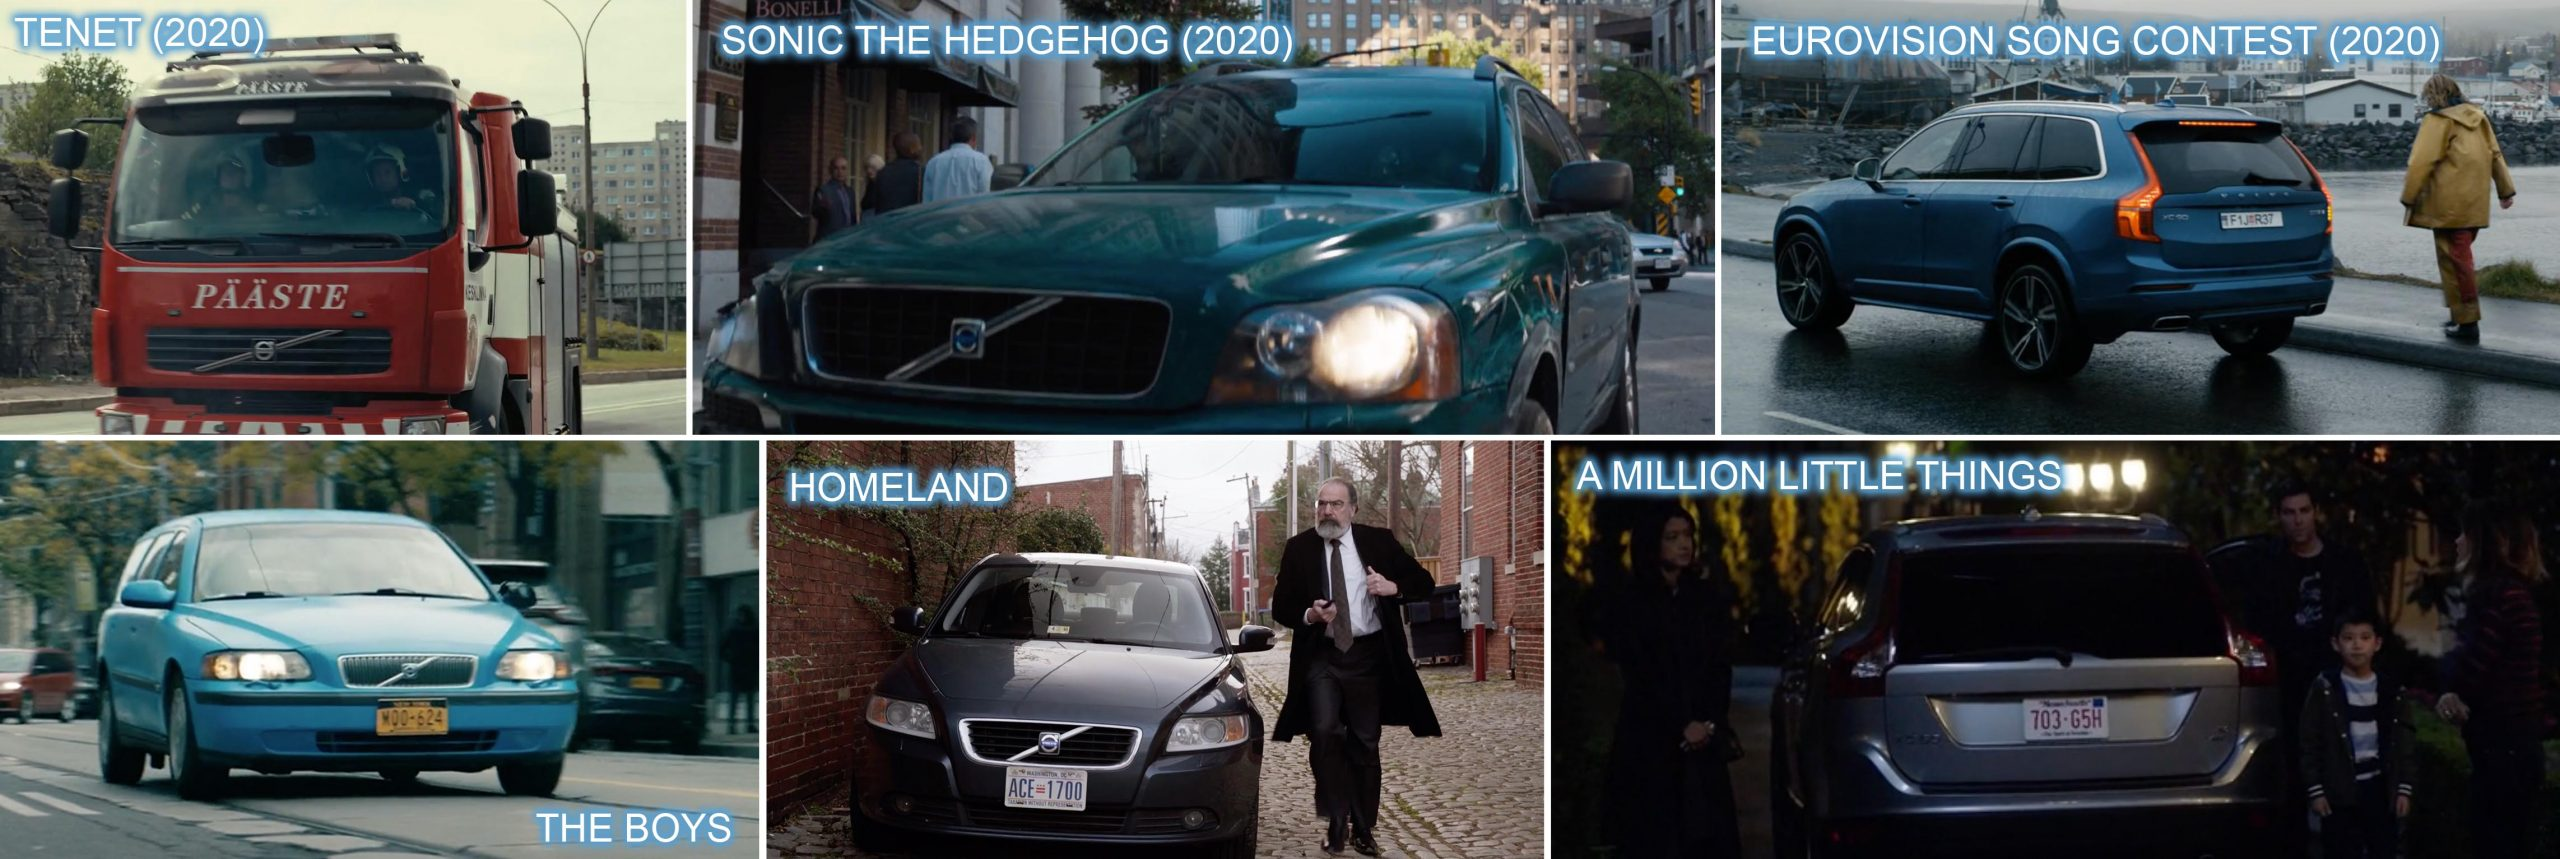 Volvo product placement in TENET, SONIC THE HEDGEHOG and EUROVISION SONG CONTEST, THE BOYS, HOMELAND and A MILLION LITTLE THINGS.